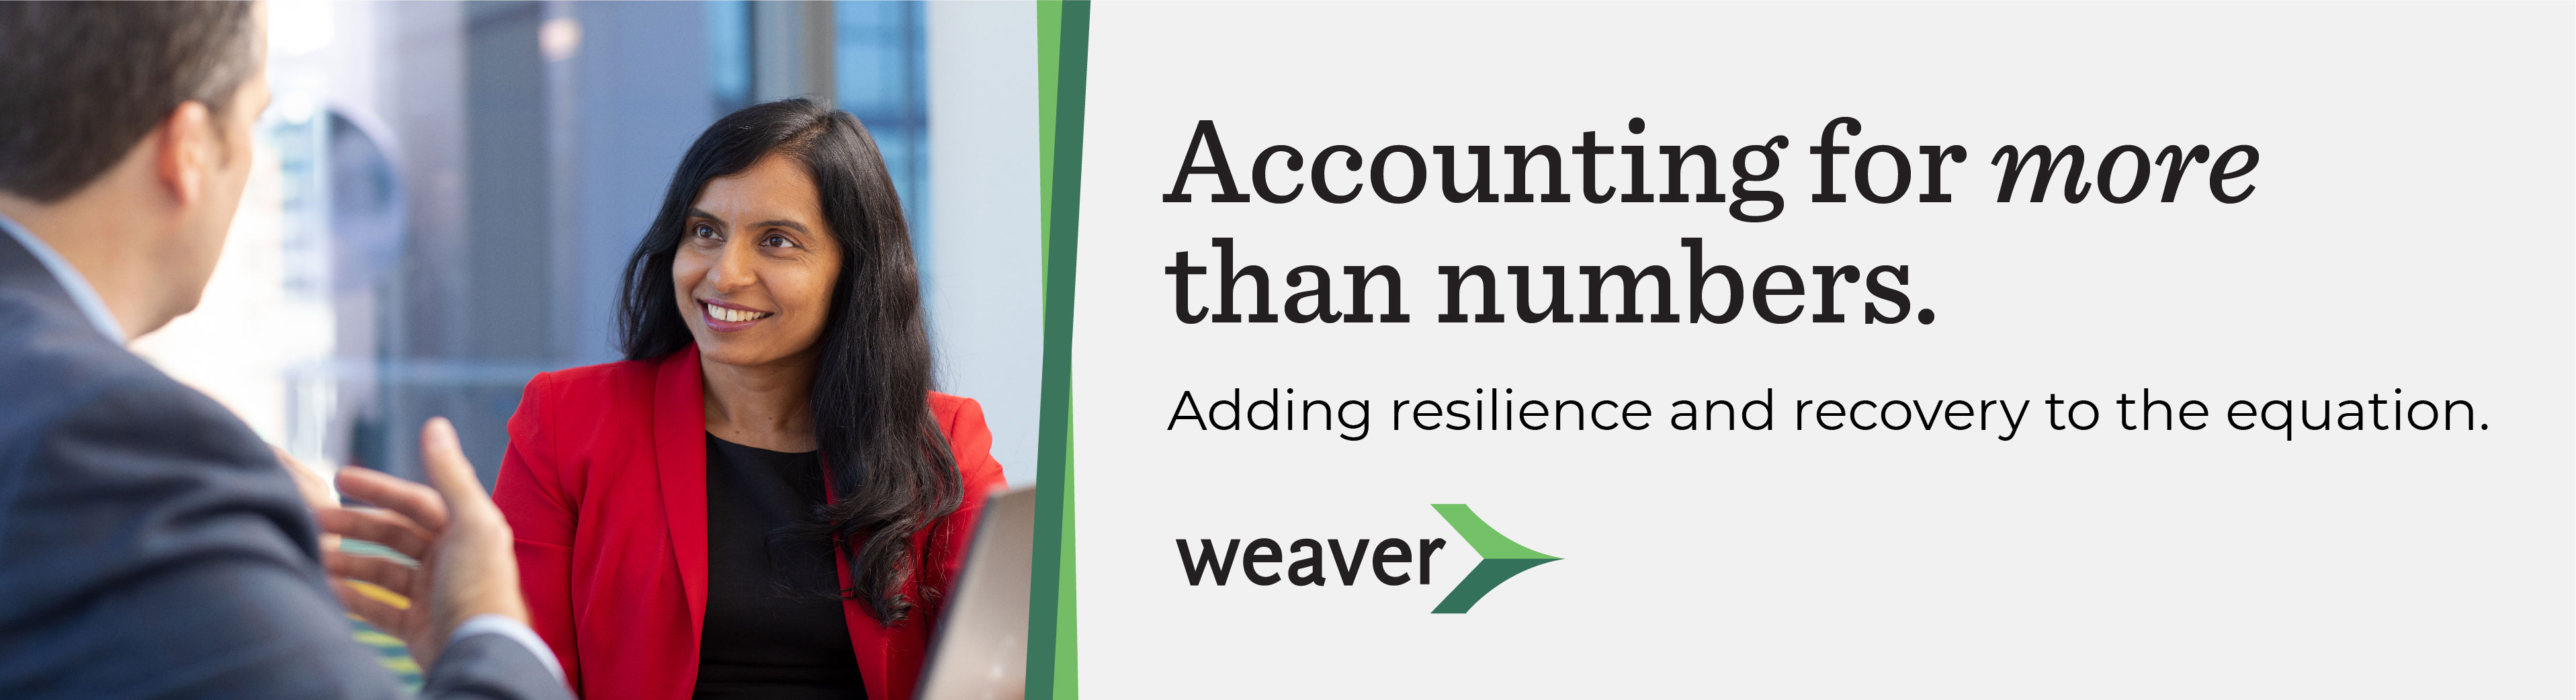 Accounting for more than numbers.